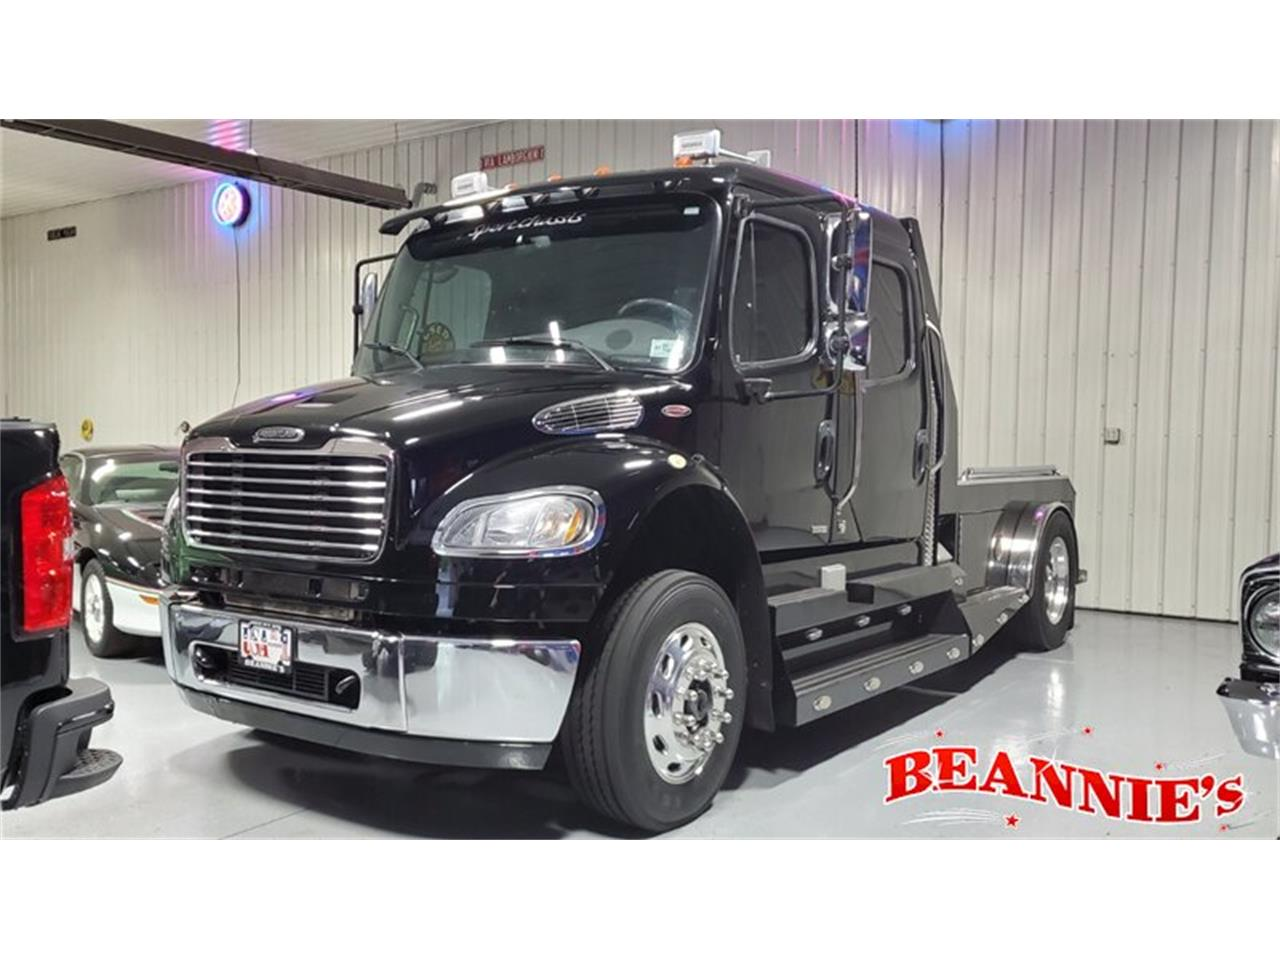 2012 Freightliner Truck (CC-1379350) for sale in Daytona Beach, Florida